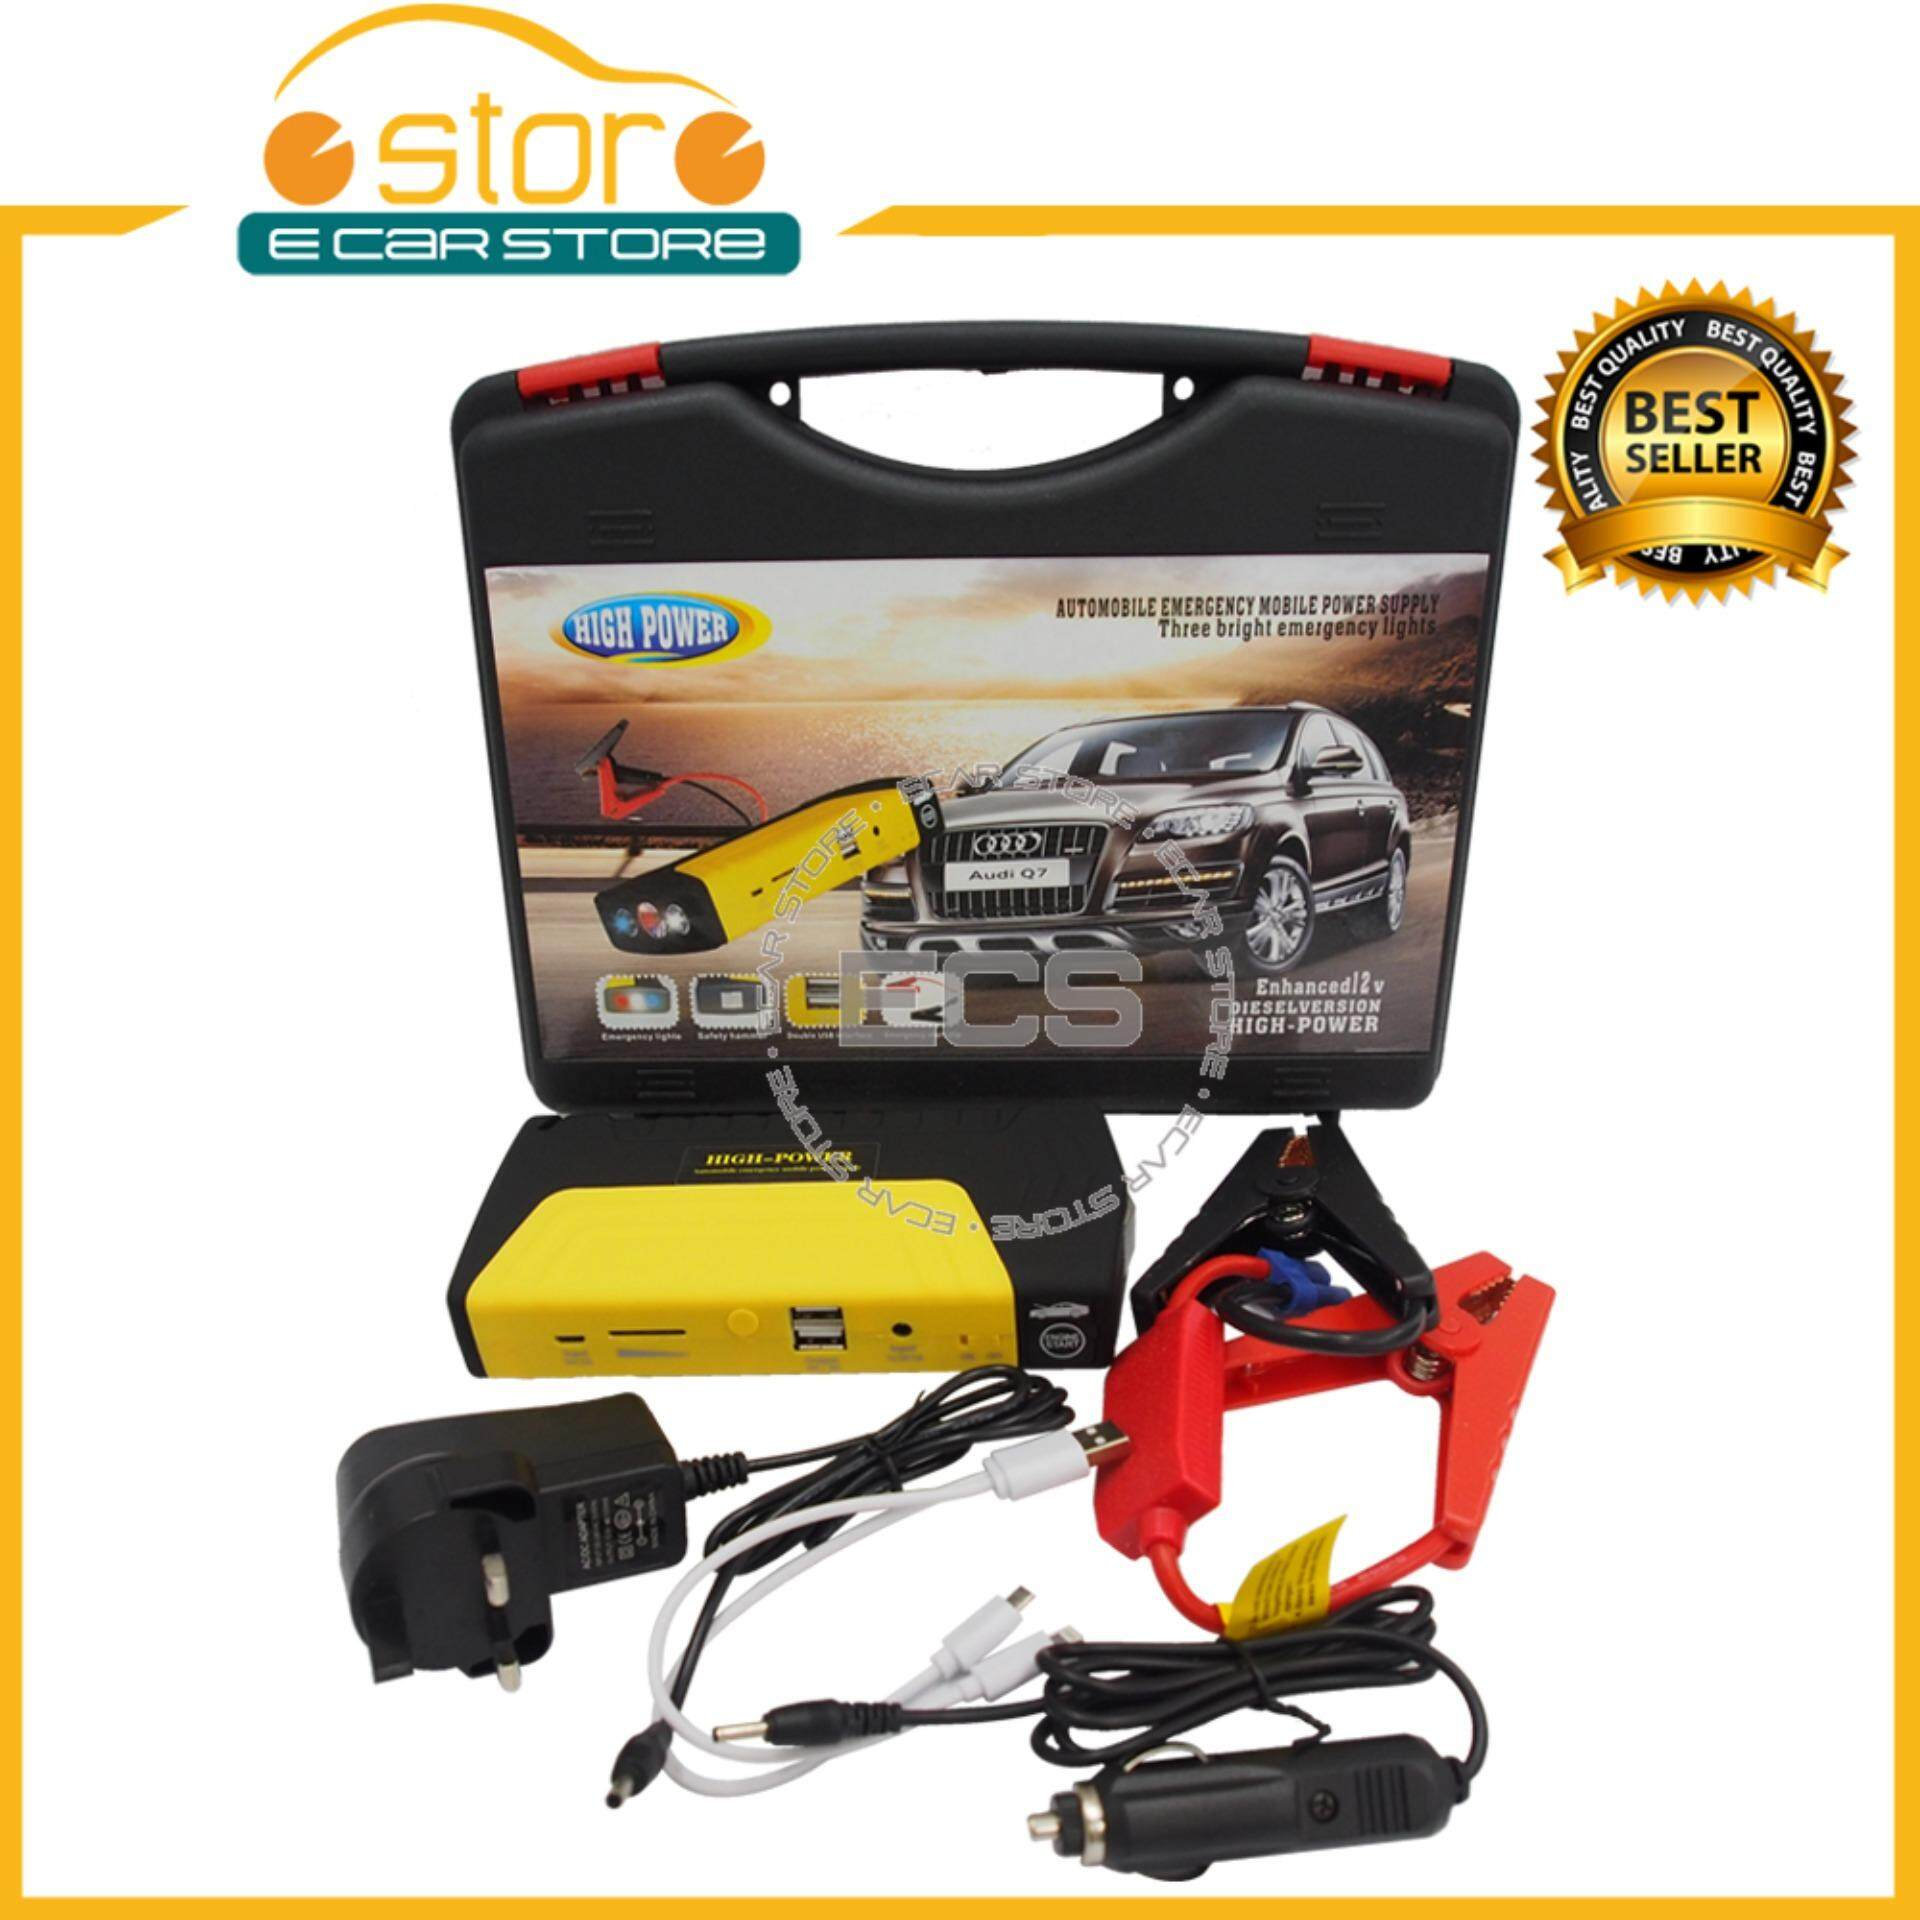 High Power Jump Start Car Power Bank (50800mah) Without Tire Inflate Device(emergency Mobile Power Supply) & Emergency Parking Light By Ecar Store.